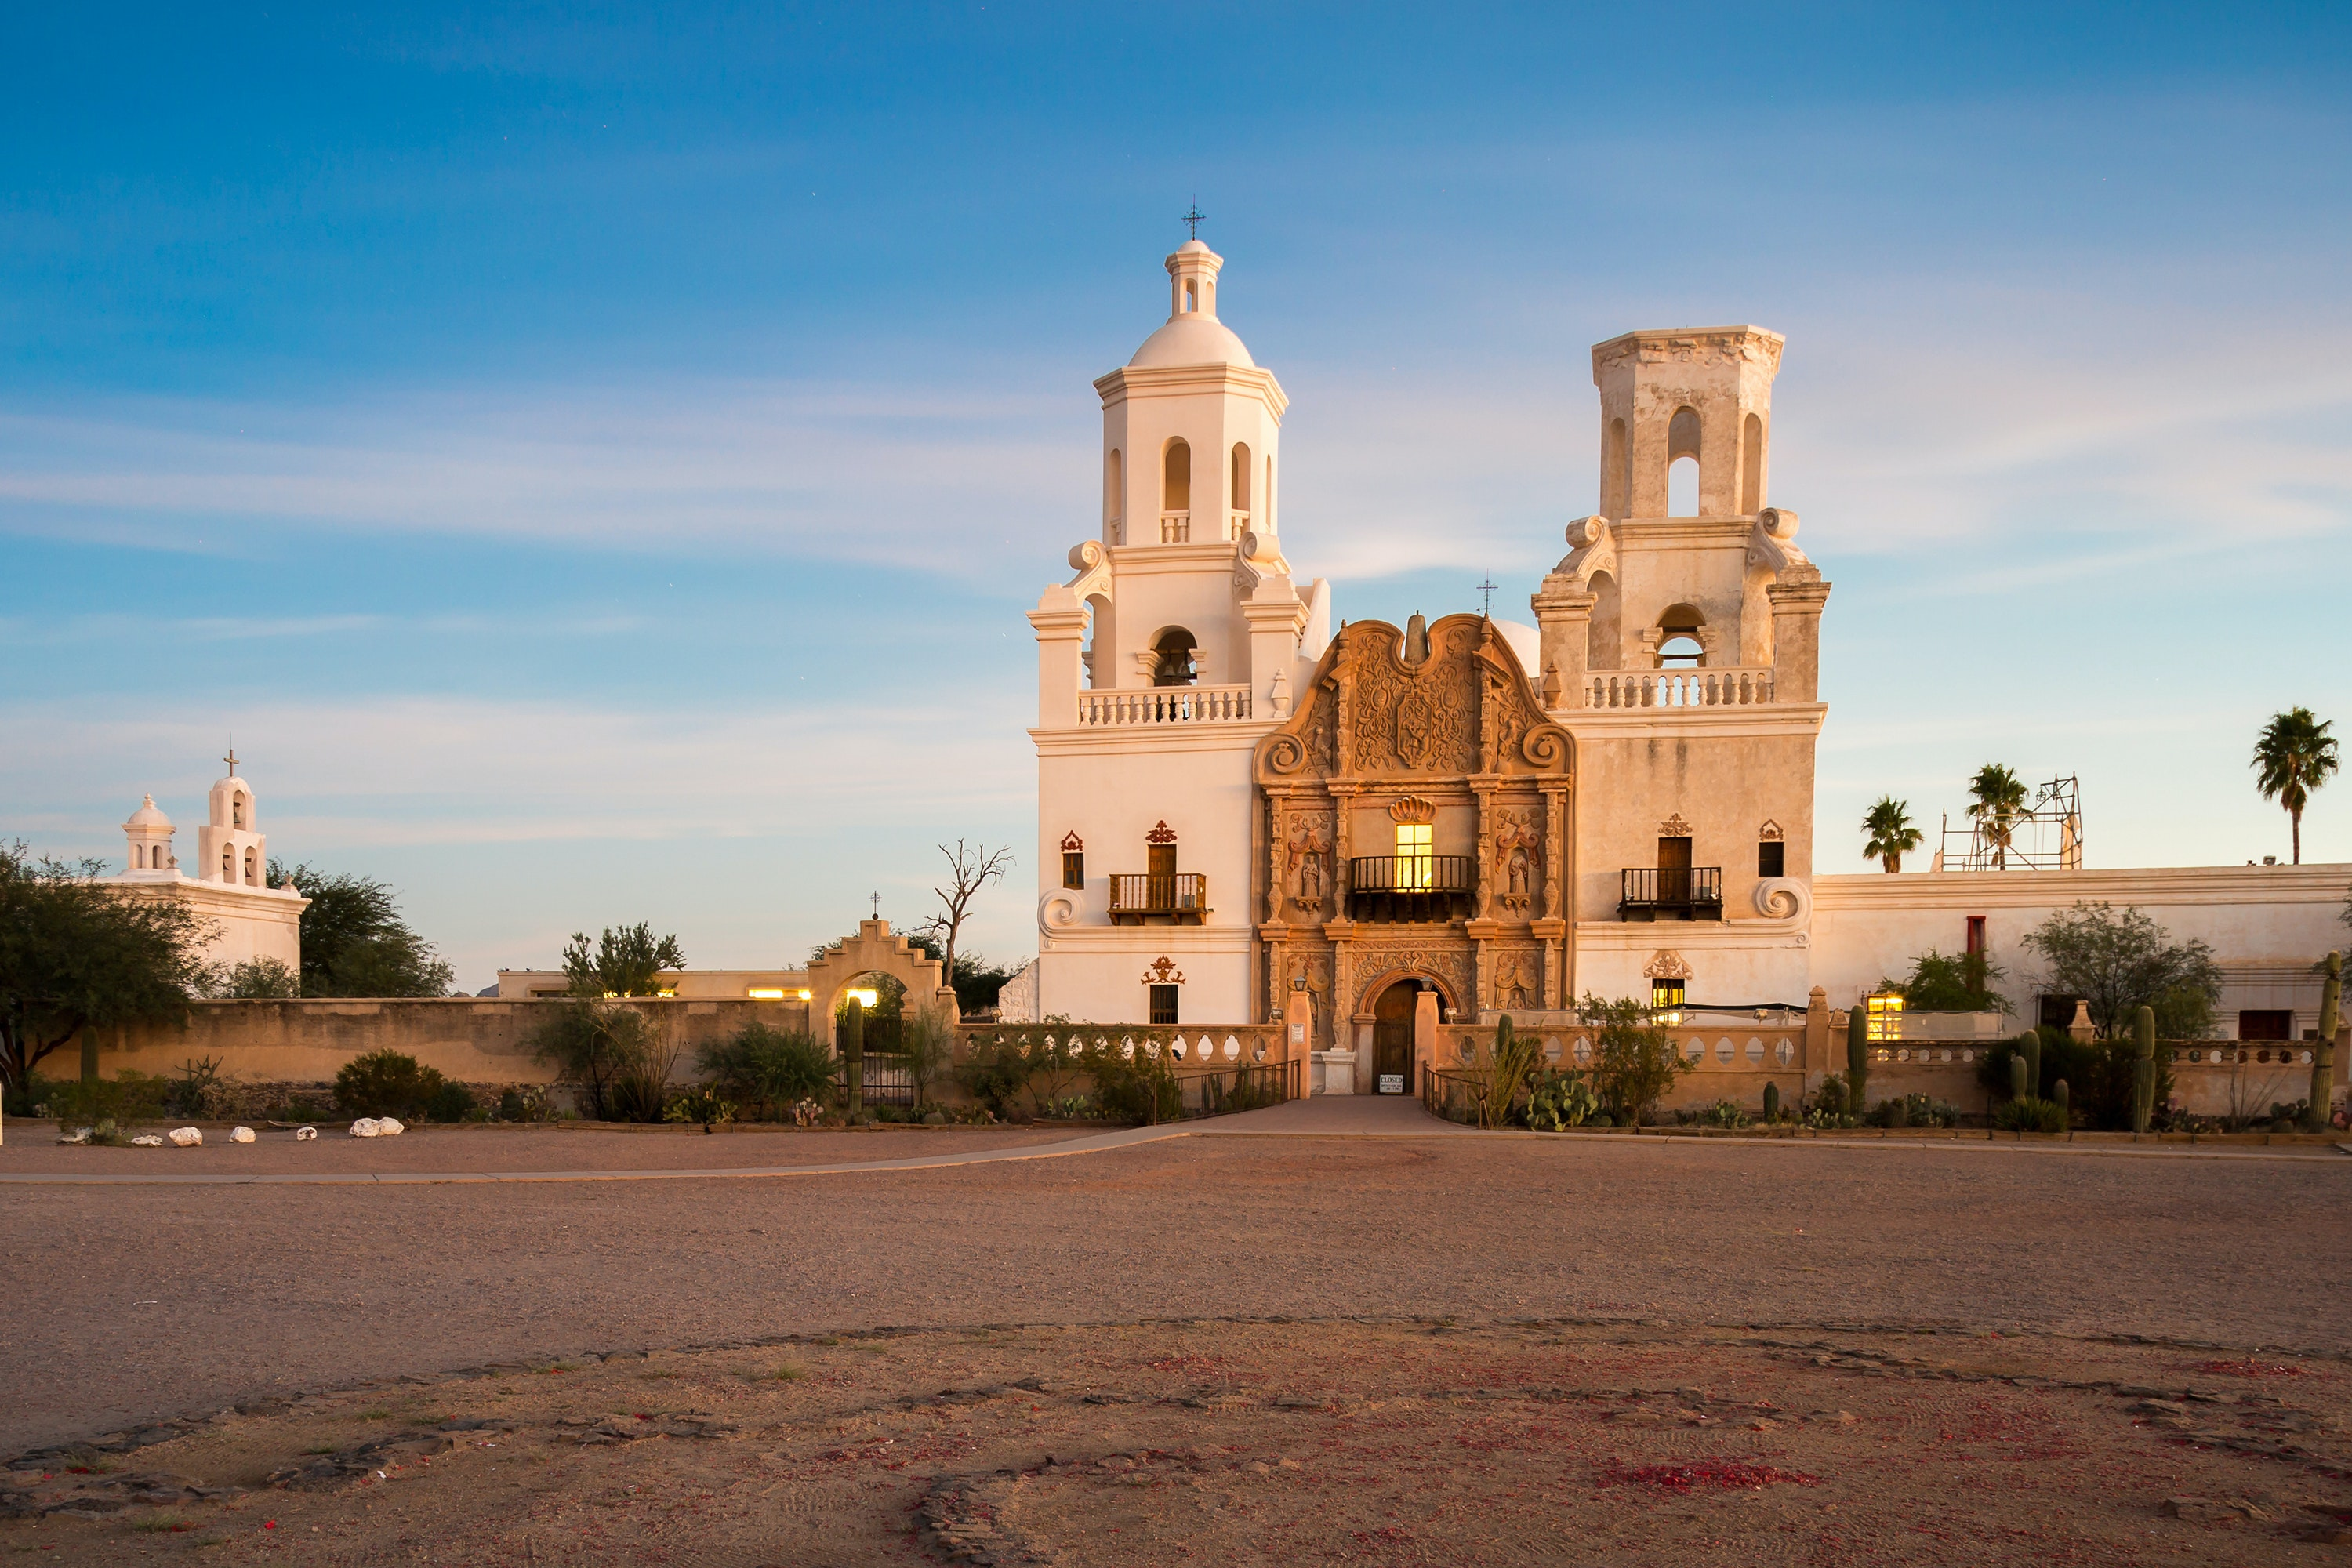 Cap off the day by watching the sunset at one of Tucson's historic landmarks, like Mission San Xavier del Bac.